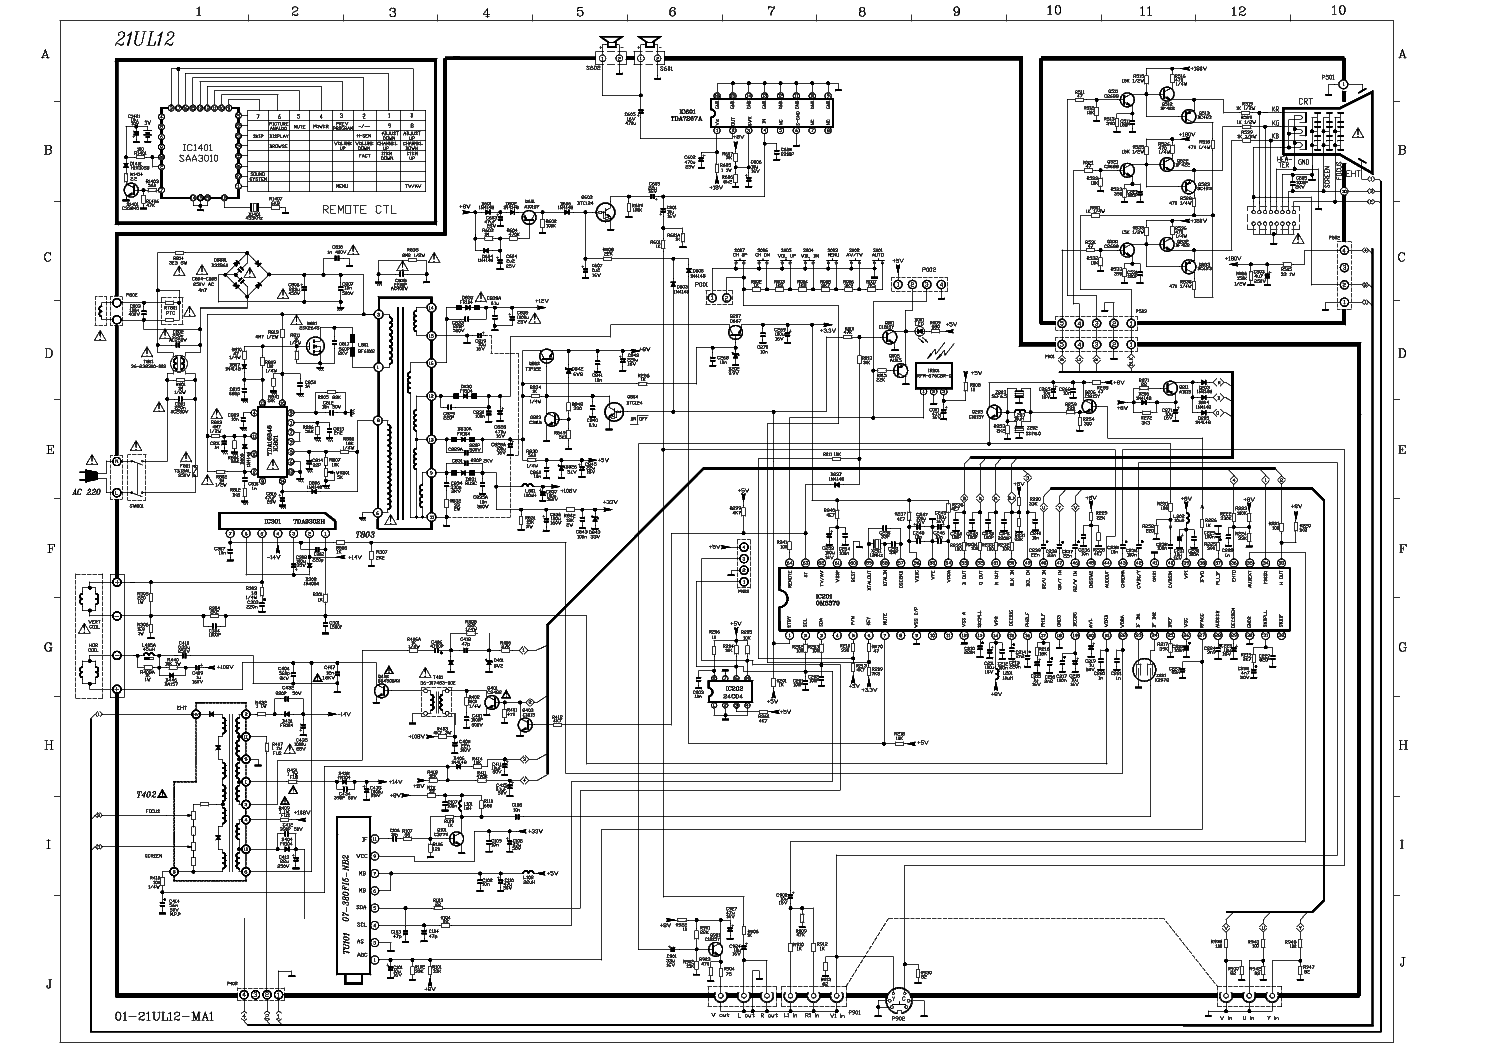 [DIAGRAM] Led Lcd Tv Circuit Diagram FULL Version HD